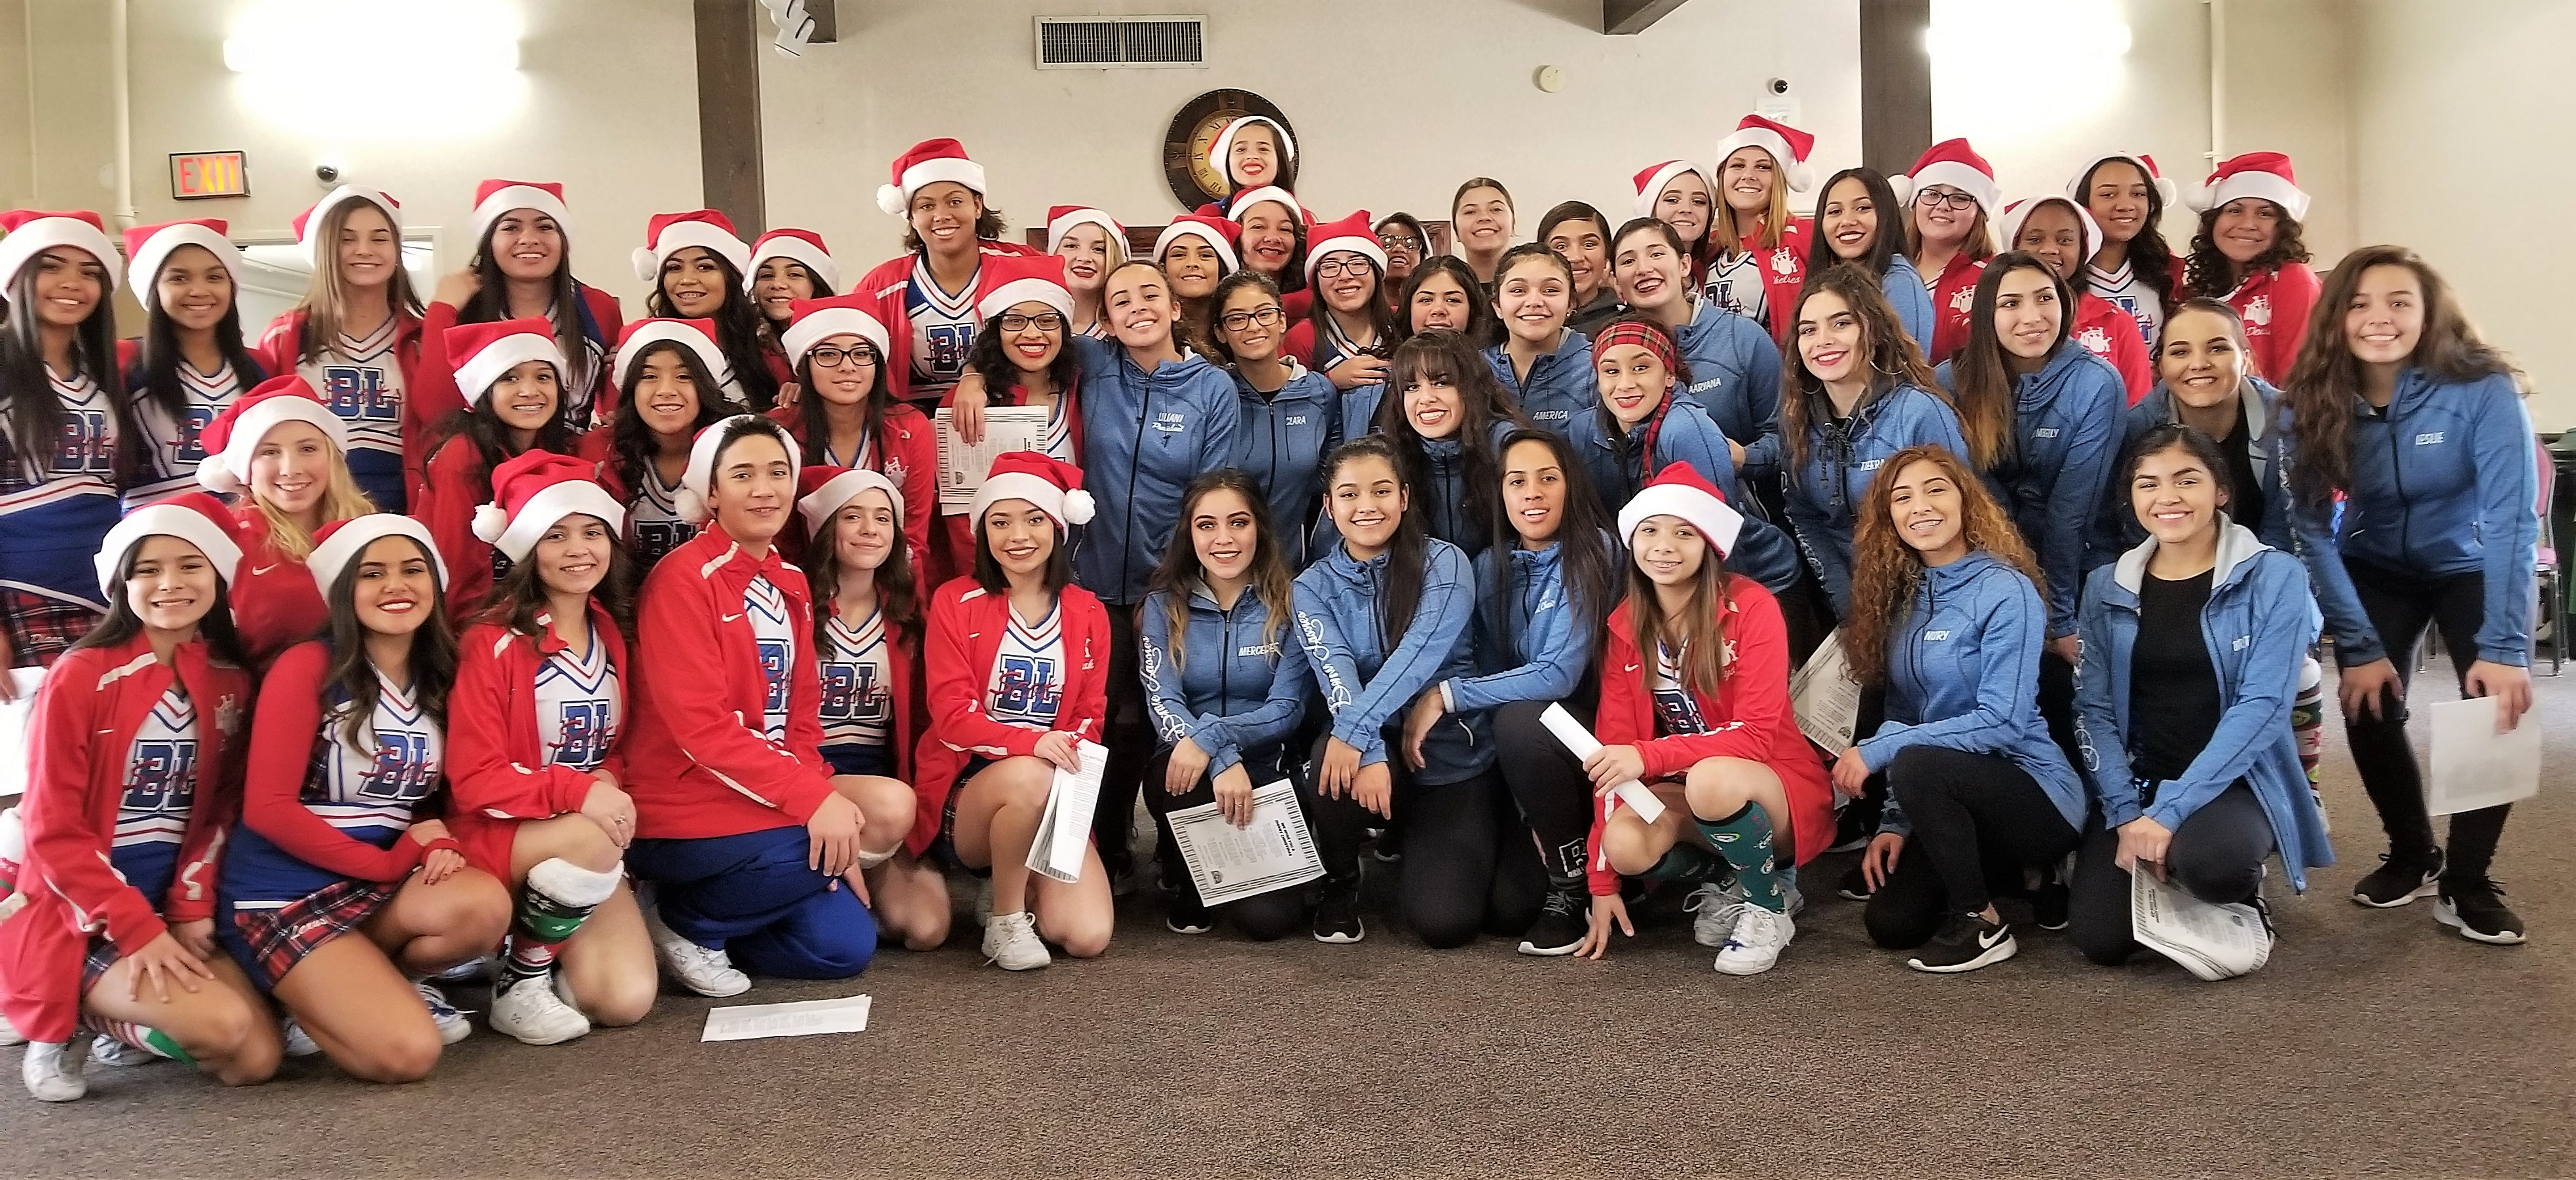 Cheerleaders and Bonnie Lassies Spread Holiday Cheer